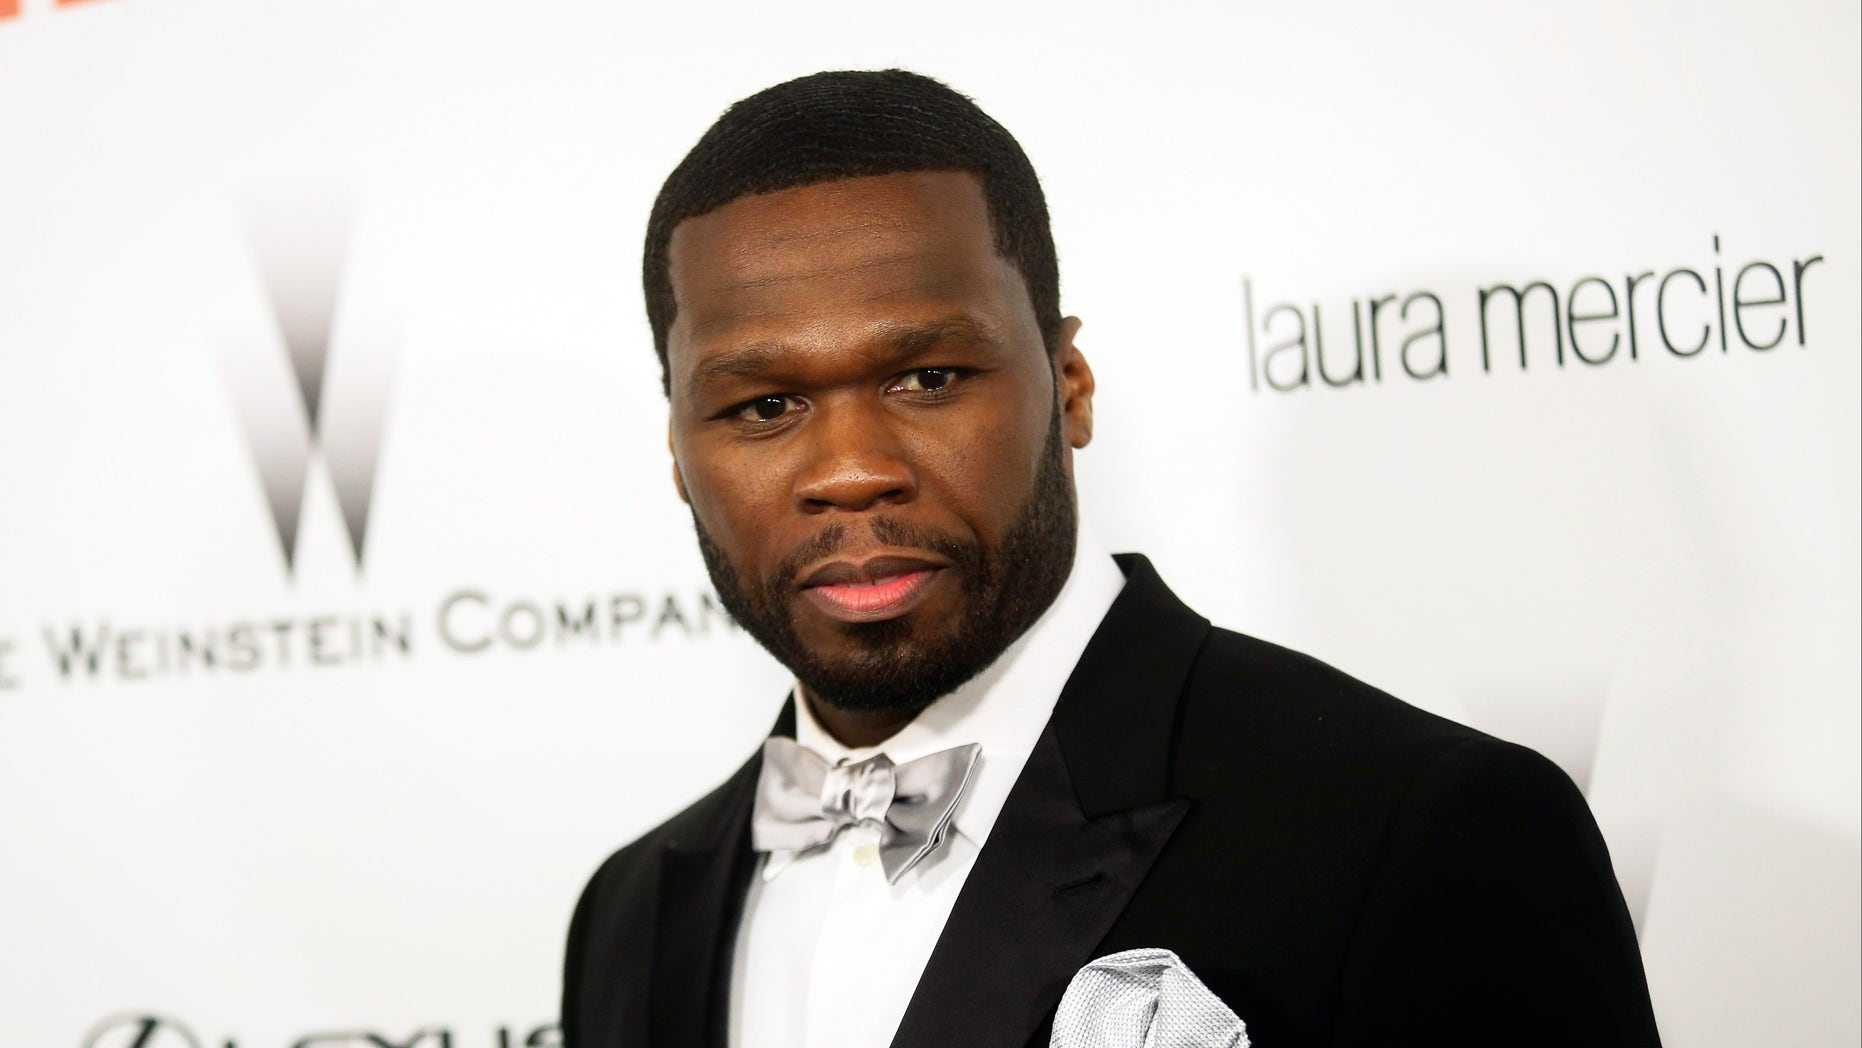 """Actor and musician Curtis """"50 Cent"""" Jackson arrives at the Weinstein Netflix after party after at the 72nd annual Golden Globe Awards in Beverly Hills, California January 11, 2015.  REUTERS/Patrick T. Fallon   (UNITED STATES - Tags: ENTERTAINMENT) (GOLDENGLOBES-PARTIES) - RTR4L1ET"""